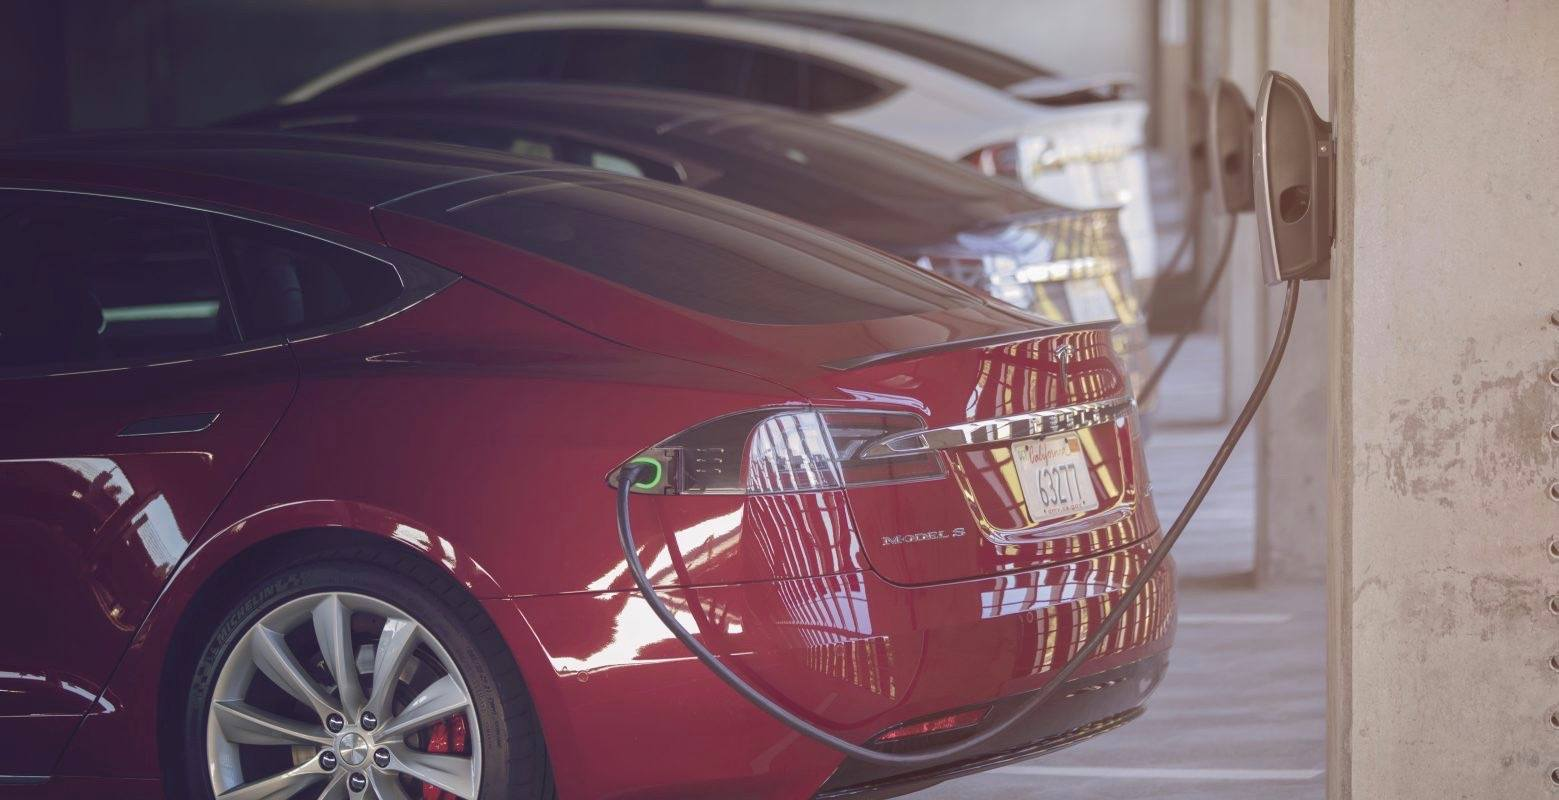 Tesla will unveil 8 new Supercharger stations in Toronto this year